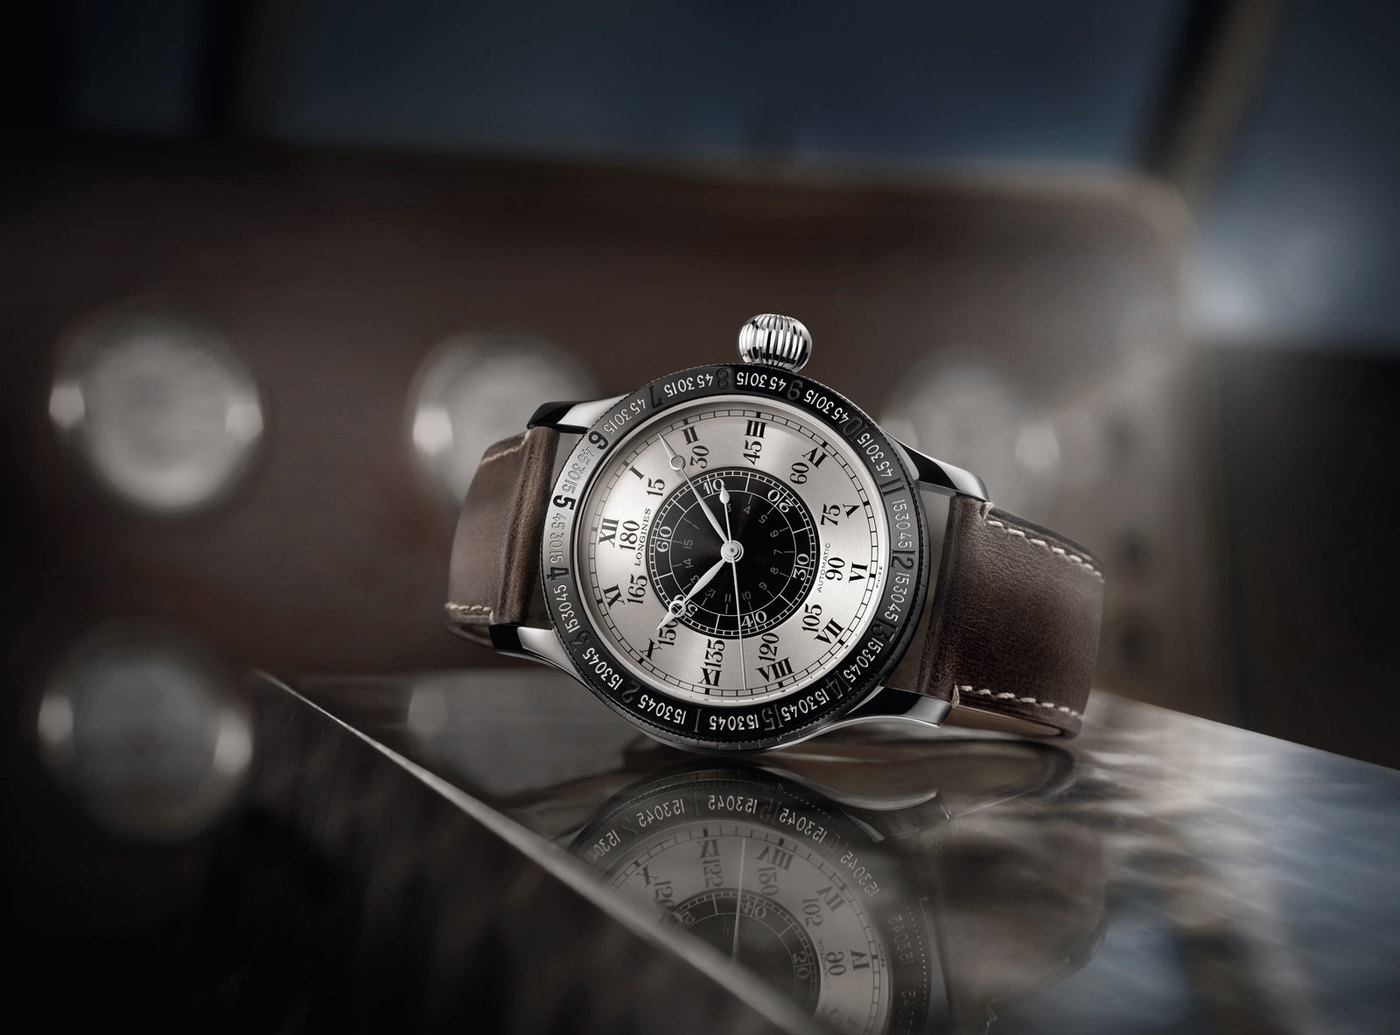 Longines Corporate Event: 90 years ago, Longines timed the amazing first solo transatlantic flight by Charles Lindbergh 3